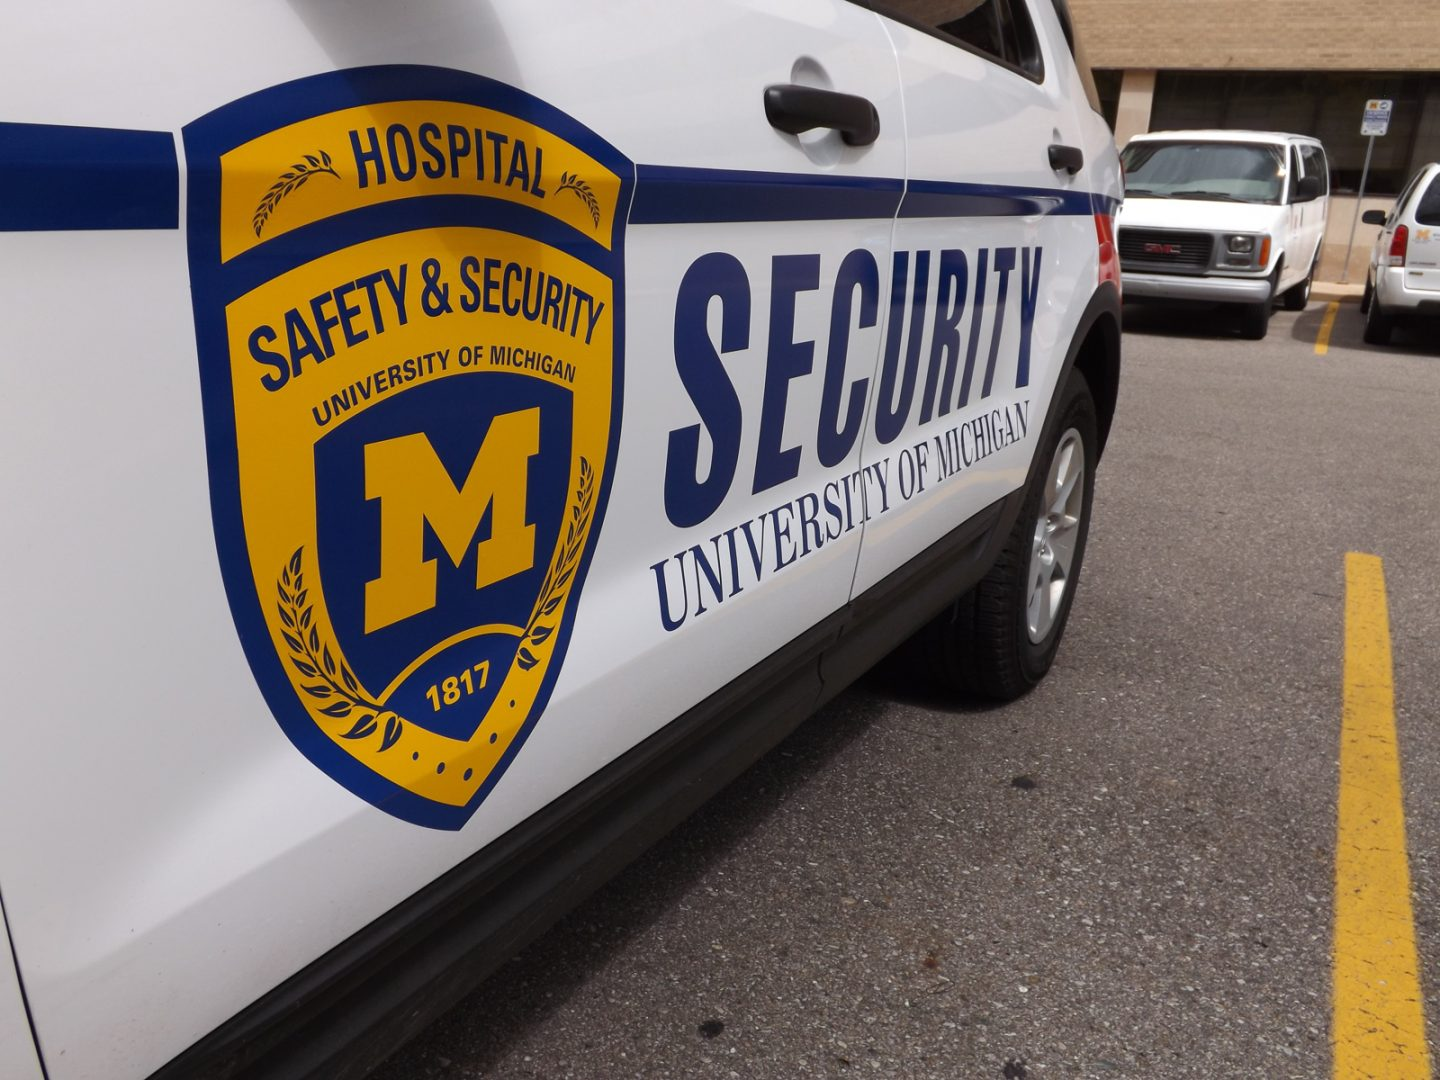 Michigan Medicine Security patrol vehicle decals